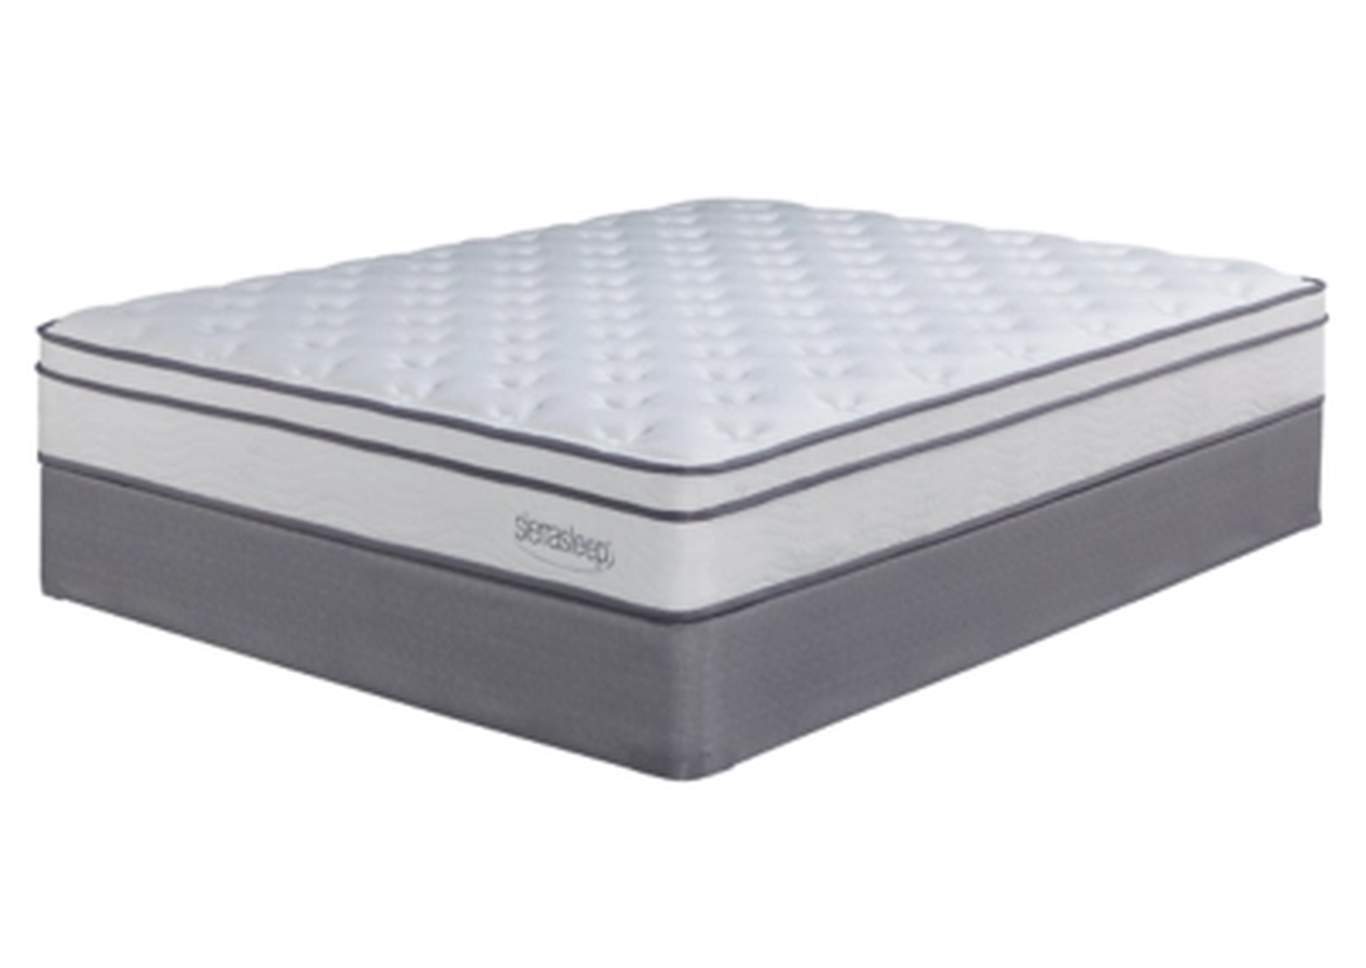 Longs Peak Limited White Full Mattress,Sierra Sleep by Ashley